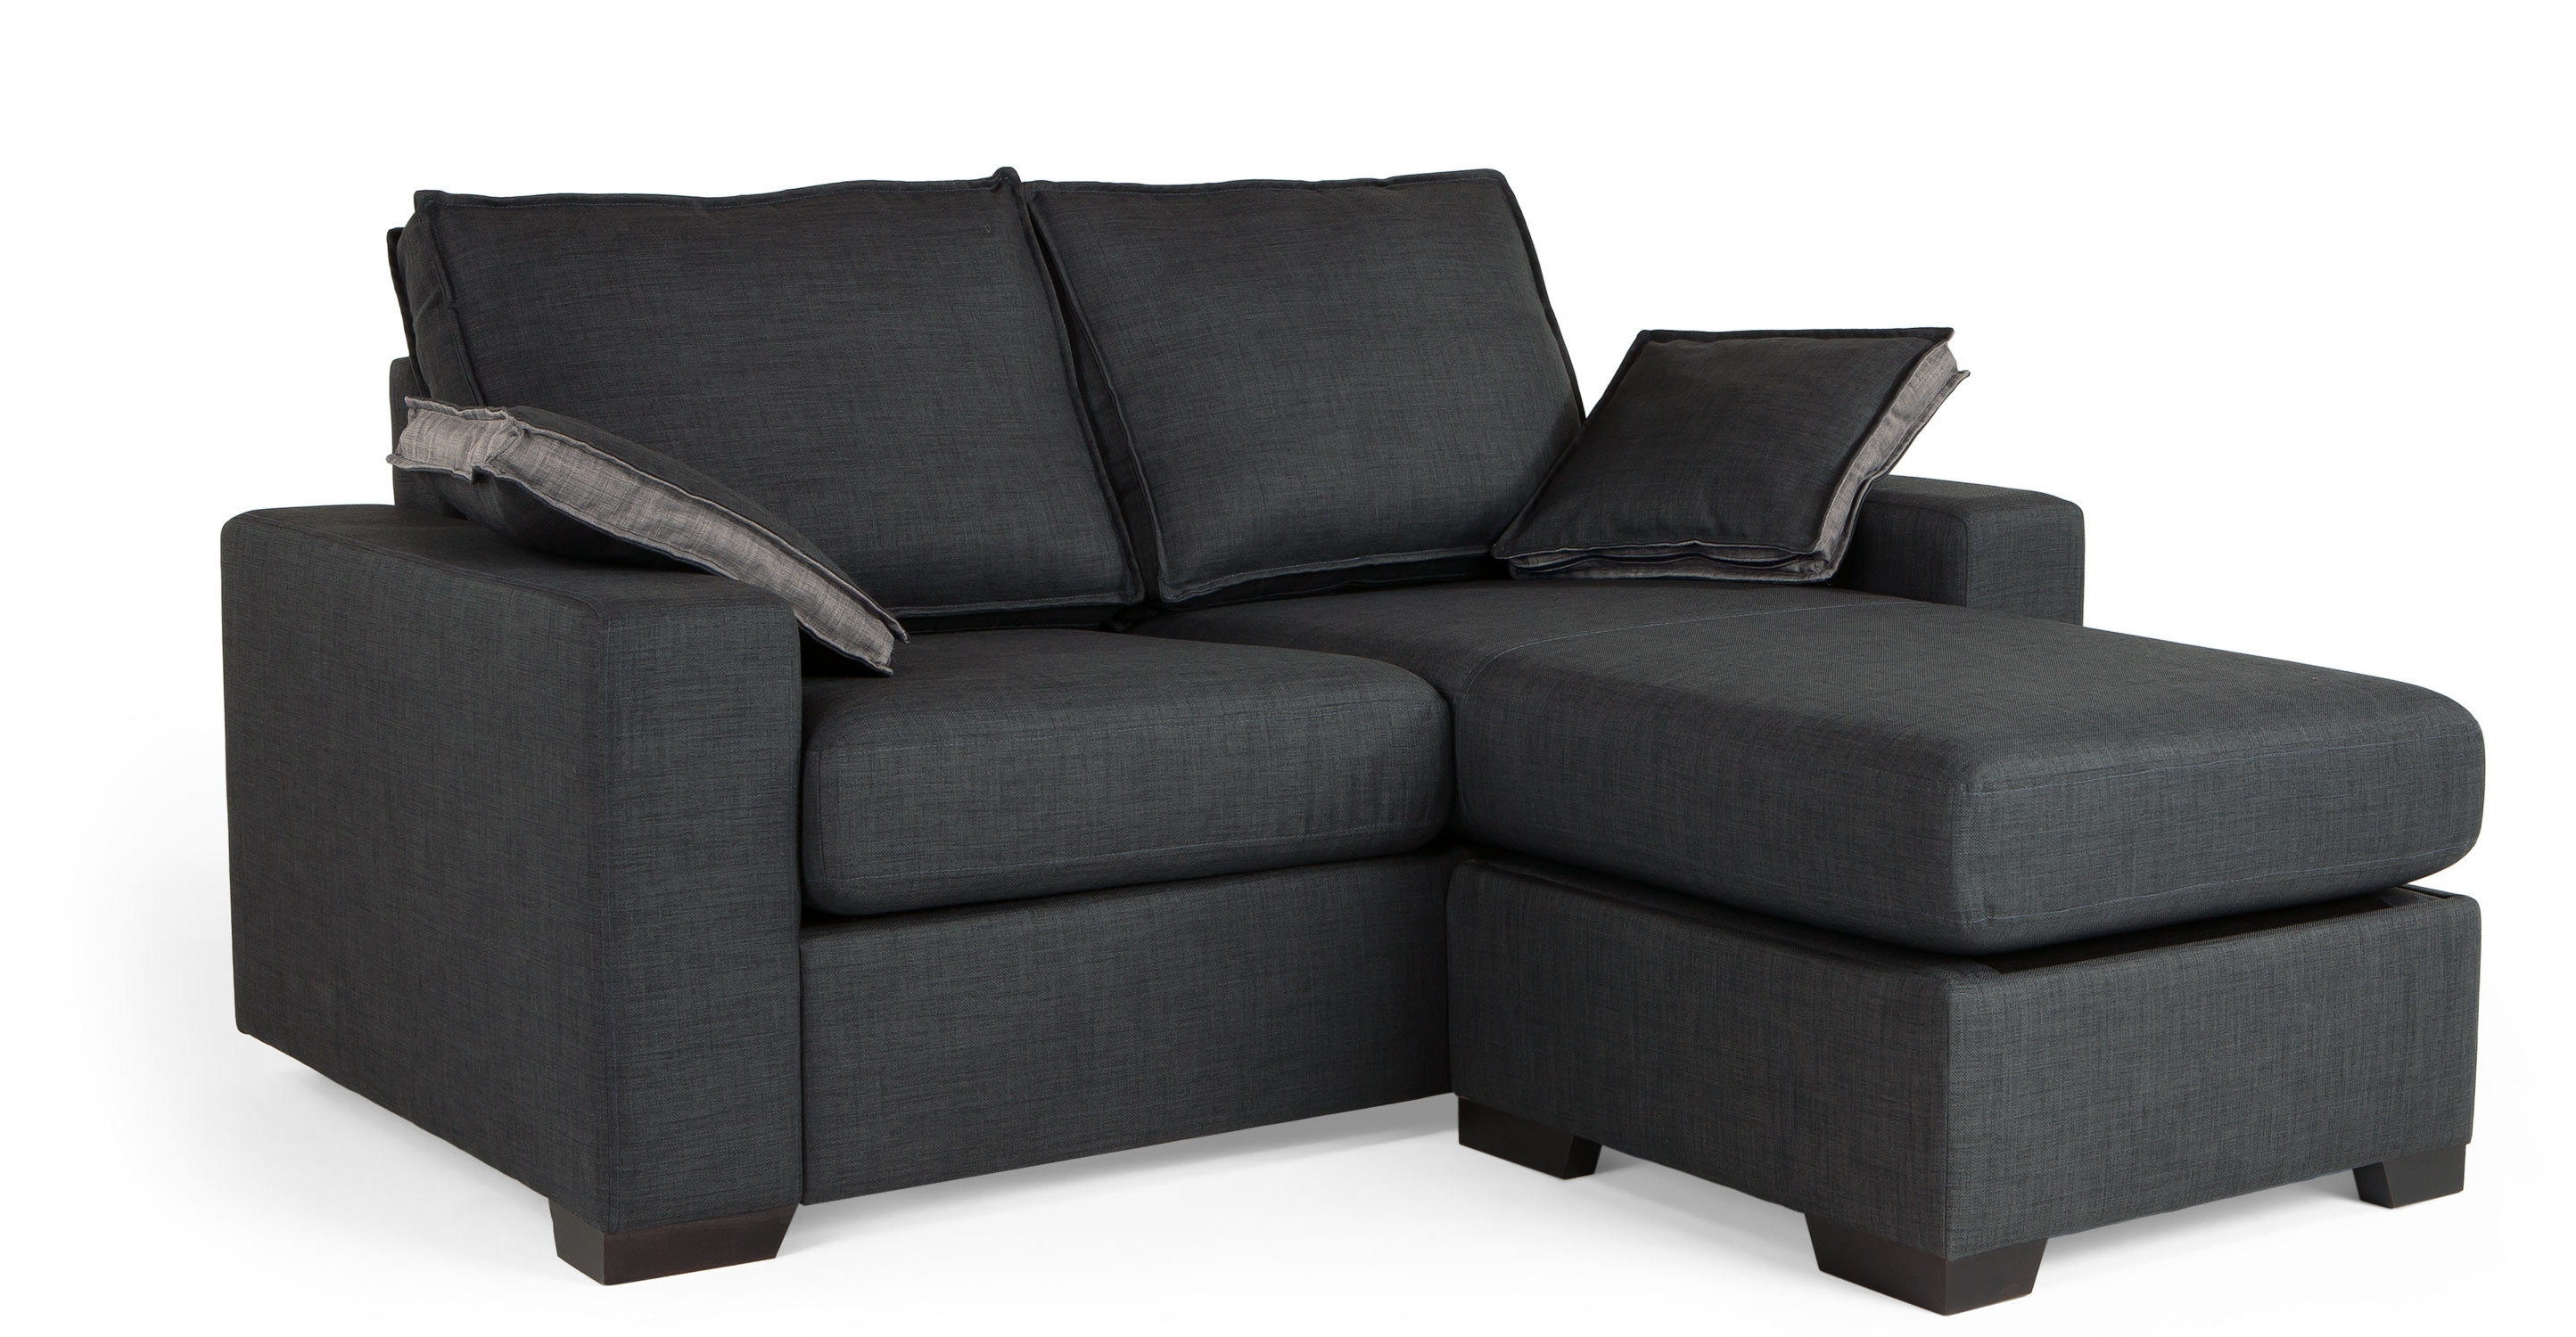 Favorite Sectional Sofa Design: Recomendation Sofa Bed Sectionals Best With Regard To Small Couches With Chaise (View 5 of 15)